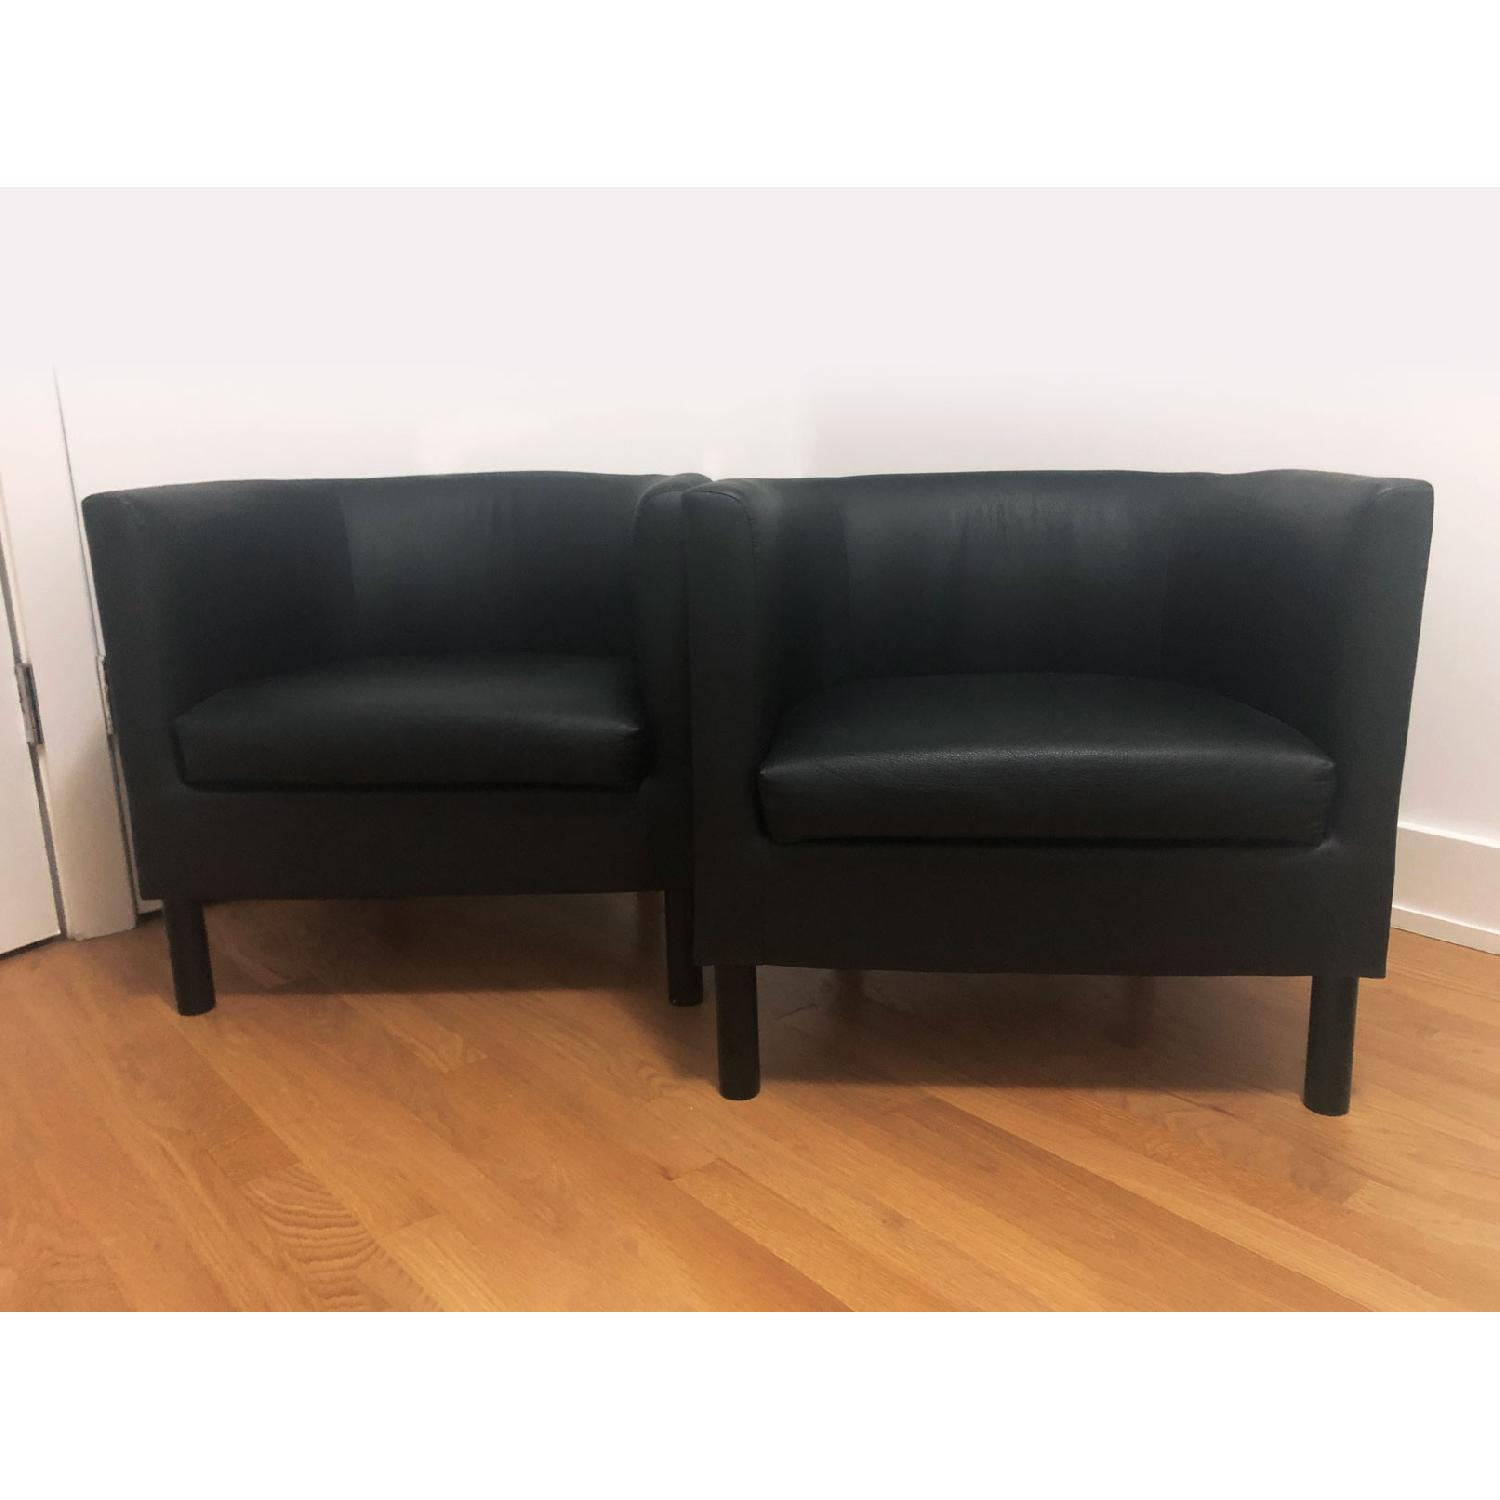 Ikea Black Faux Leather Armchairs - image-0